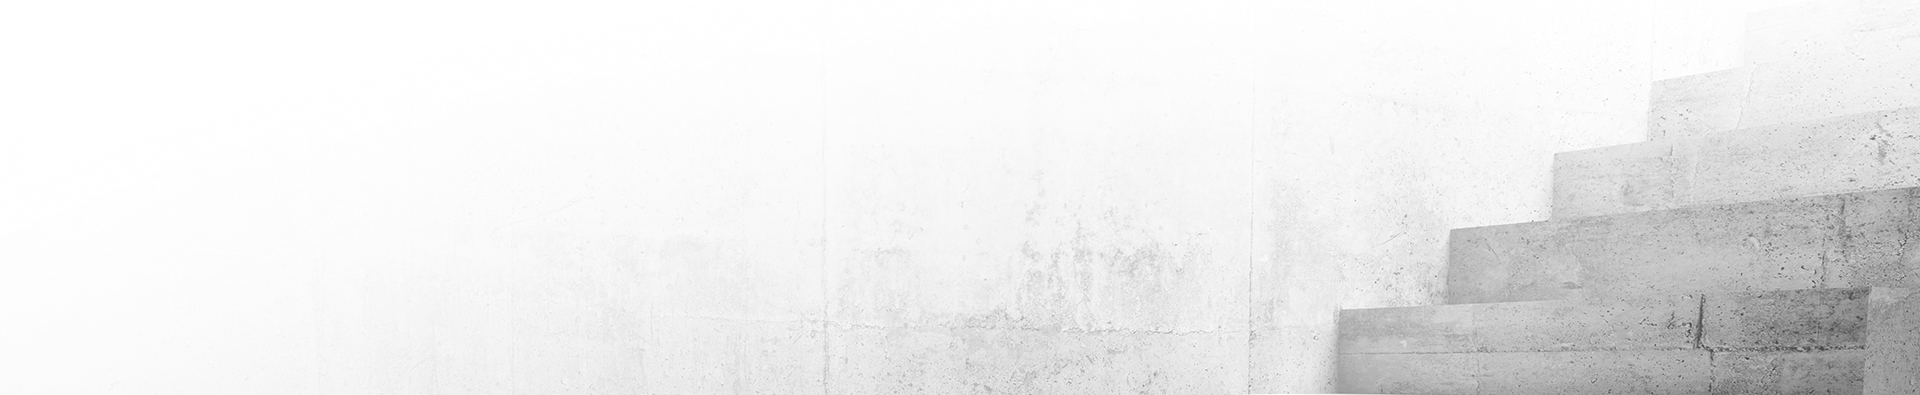 trappe_banner